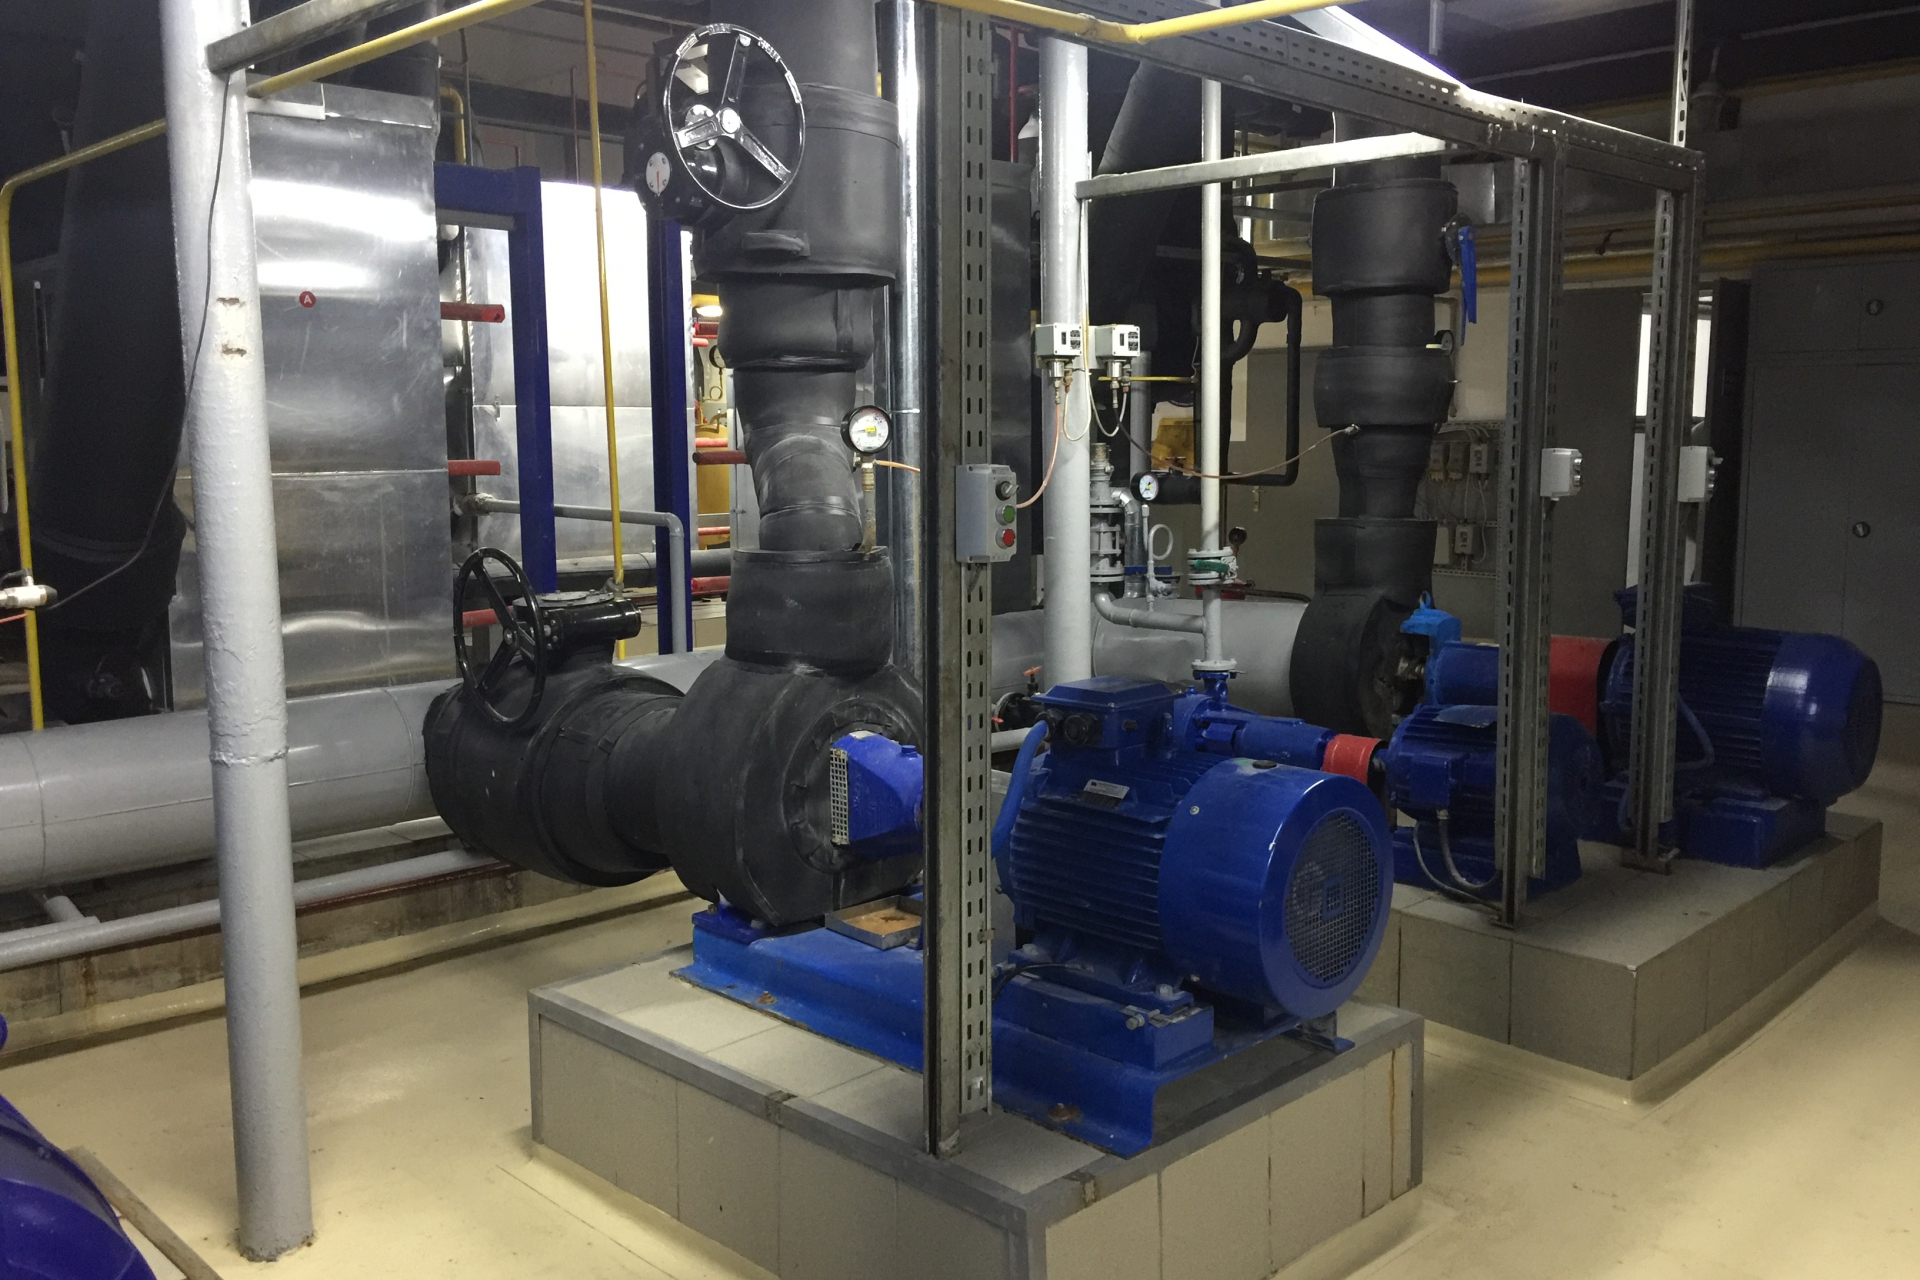 repair and maintenance of refrigeration and compressor equipment-image-3